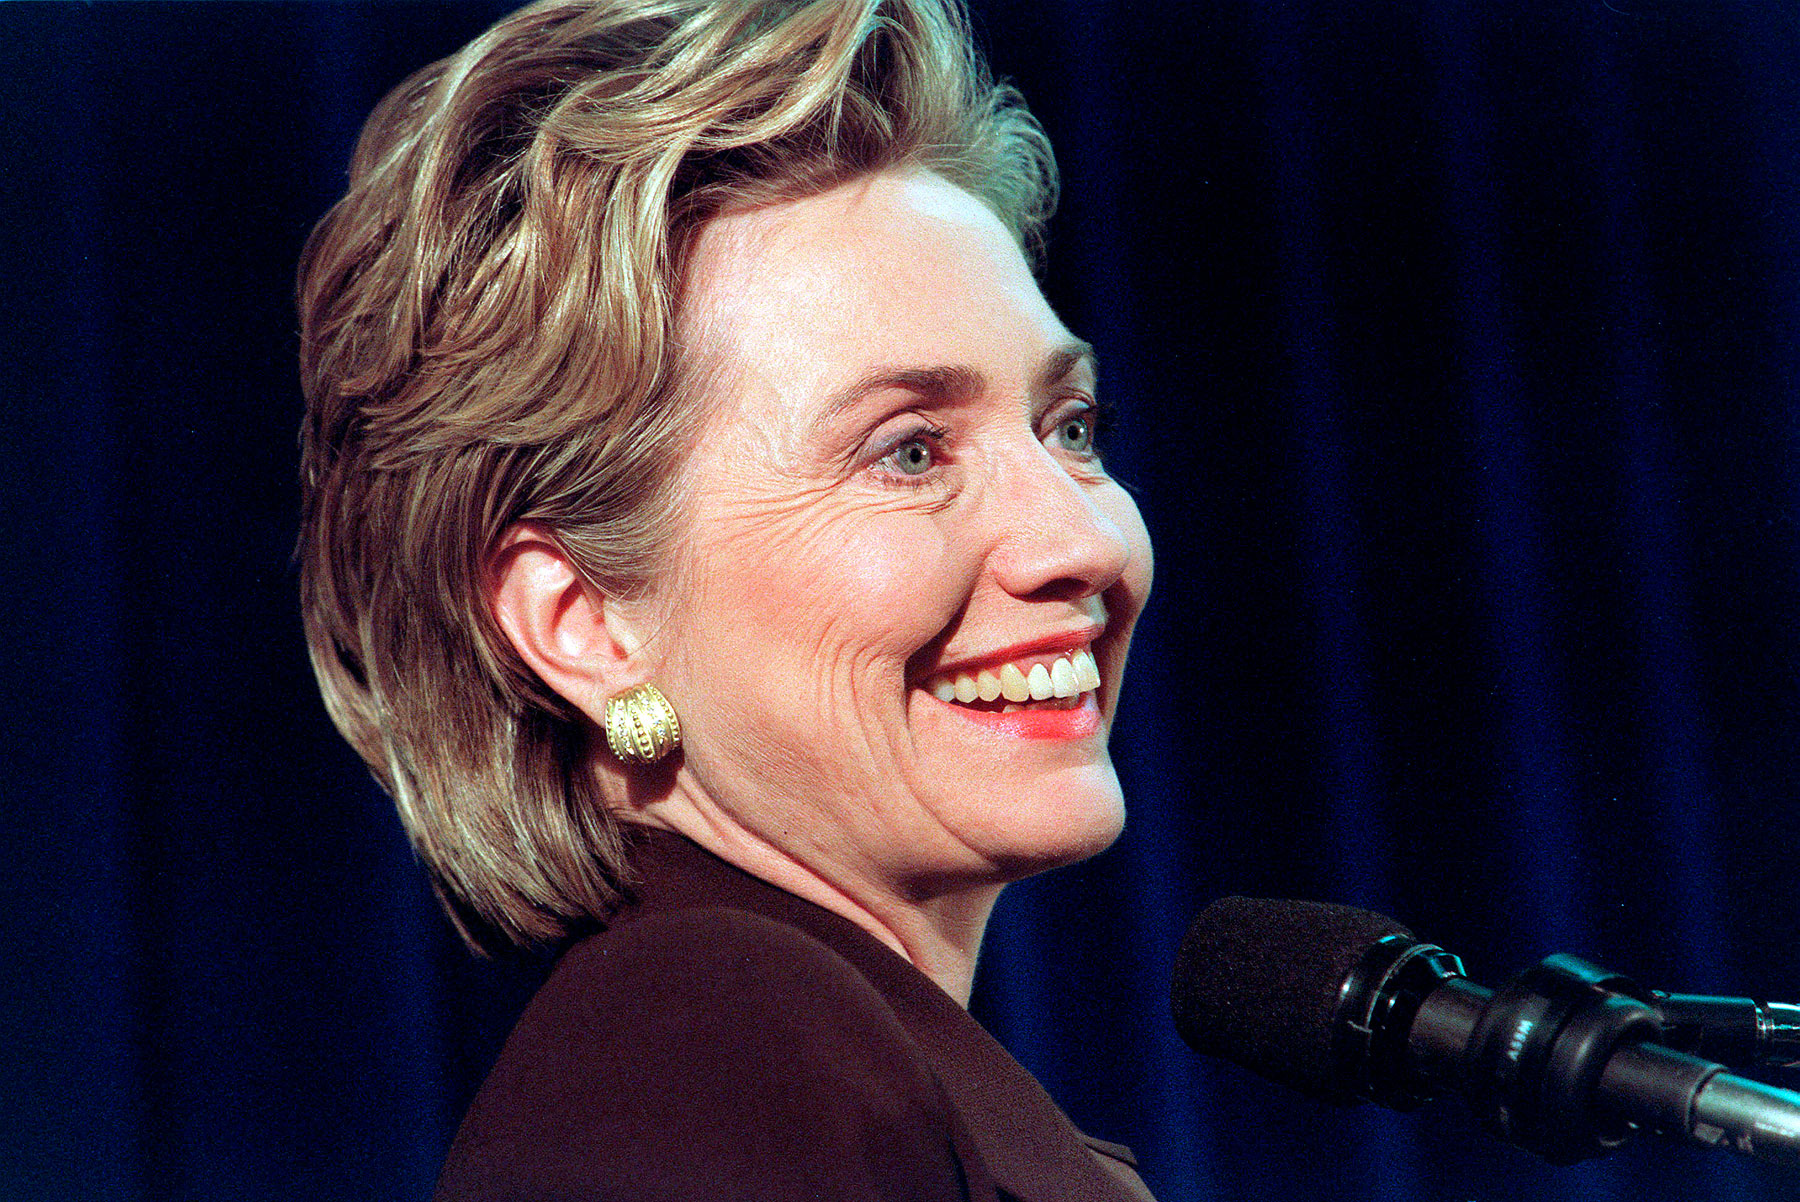 Hillary Clinton announces senatorial bid in New York City on Nov. 23, 1999.